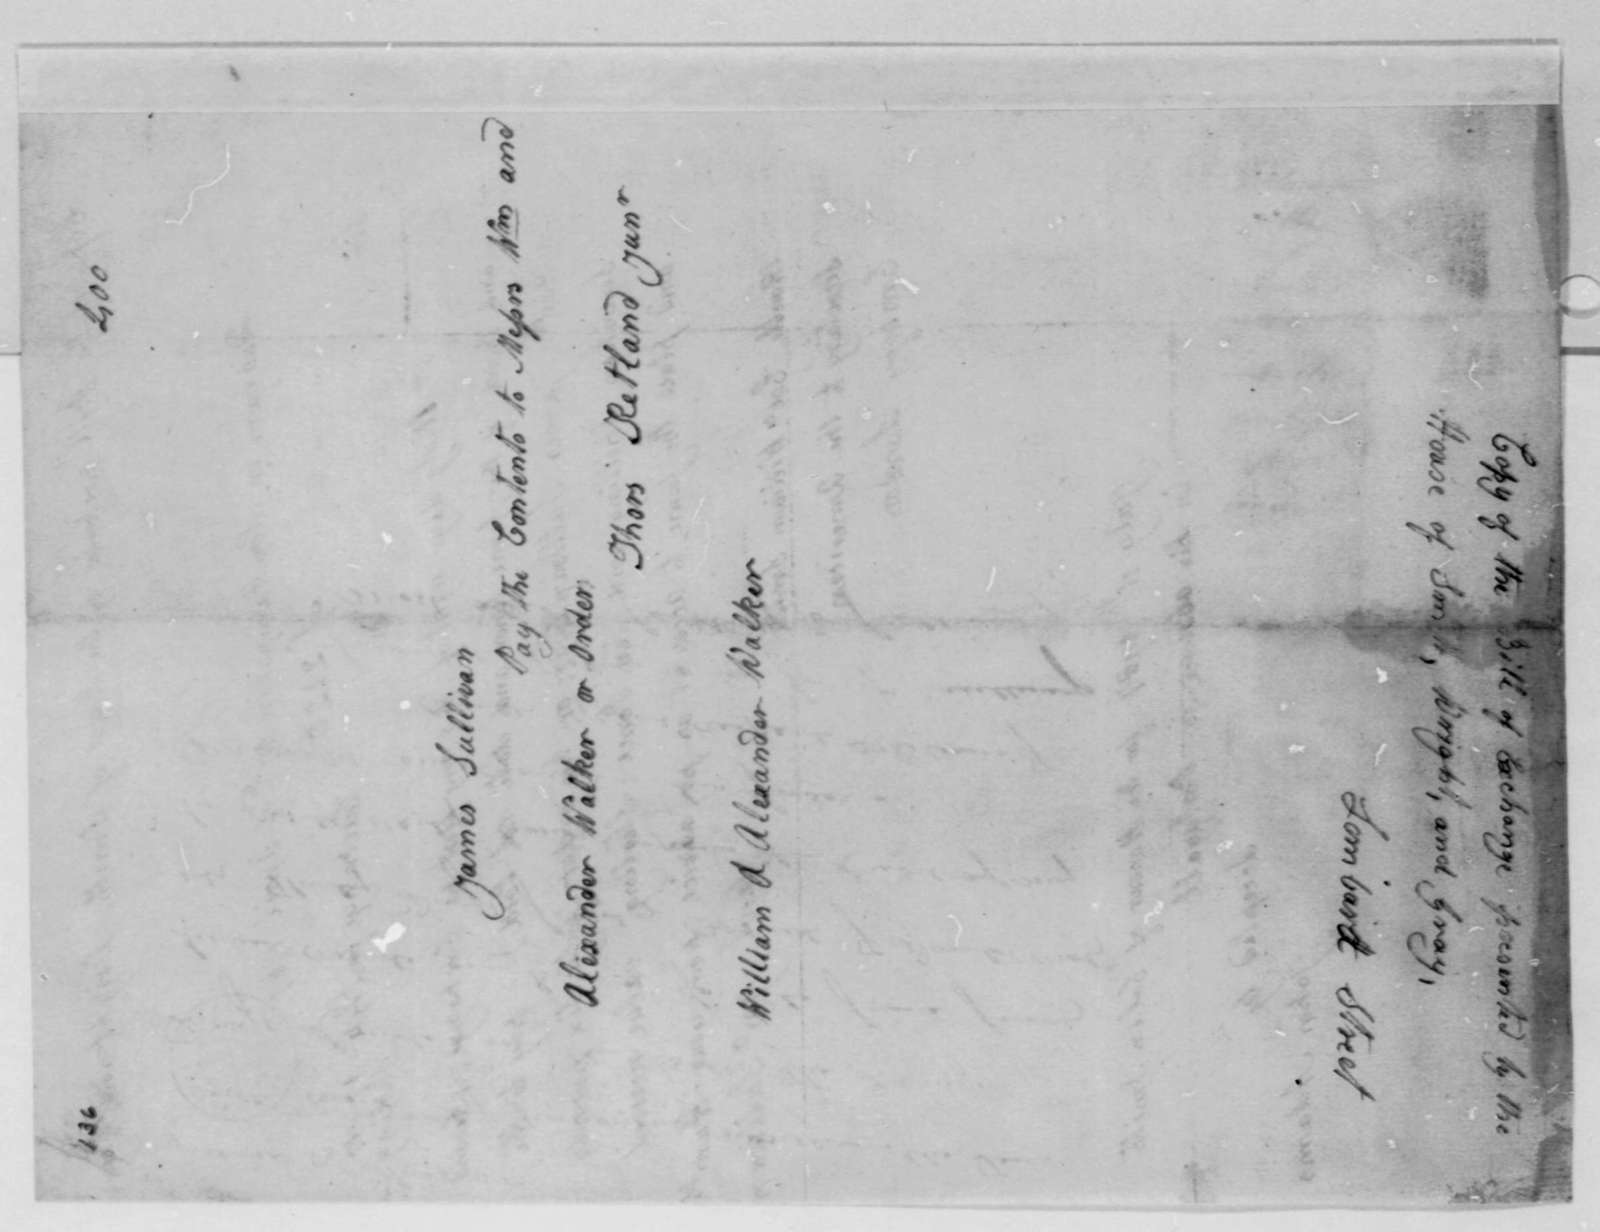 John Sullivan to William S. Smith, April 27, 1787, Copy of Bill of Exchange Presented by Smith, Wright, & Gray